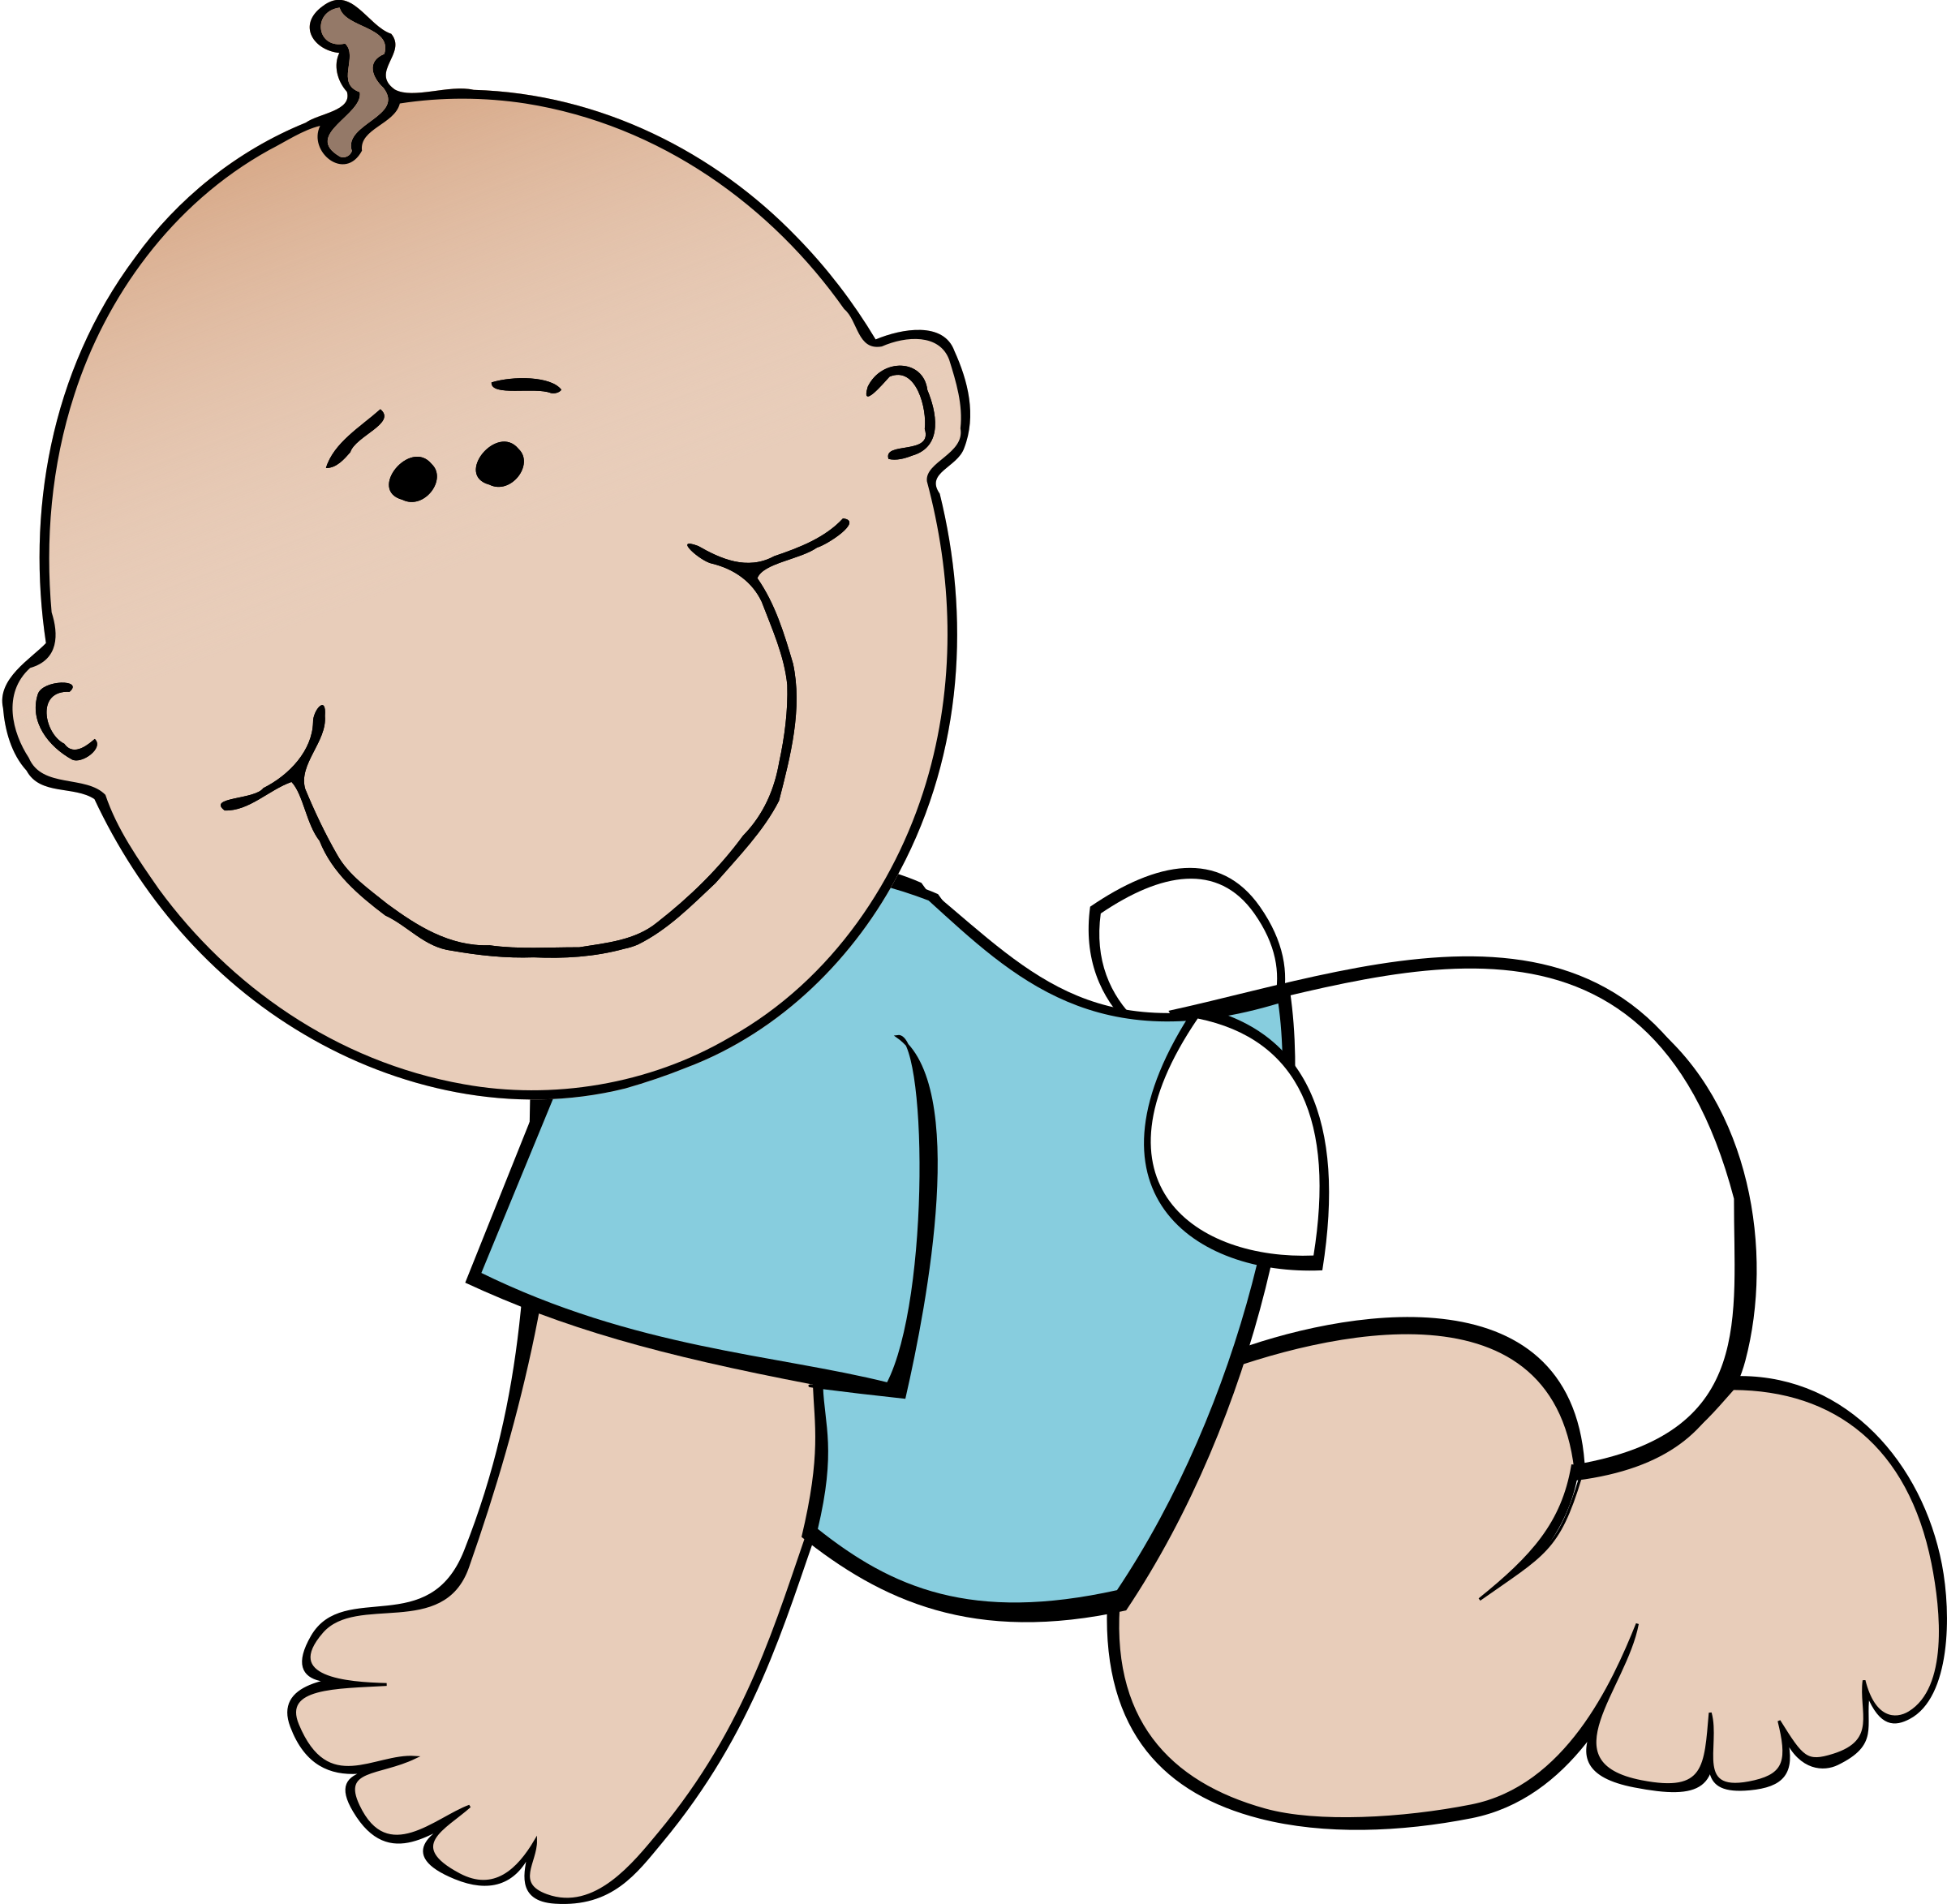 Young clipart young baby, Young young baby Transparent FREE.